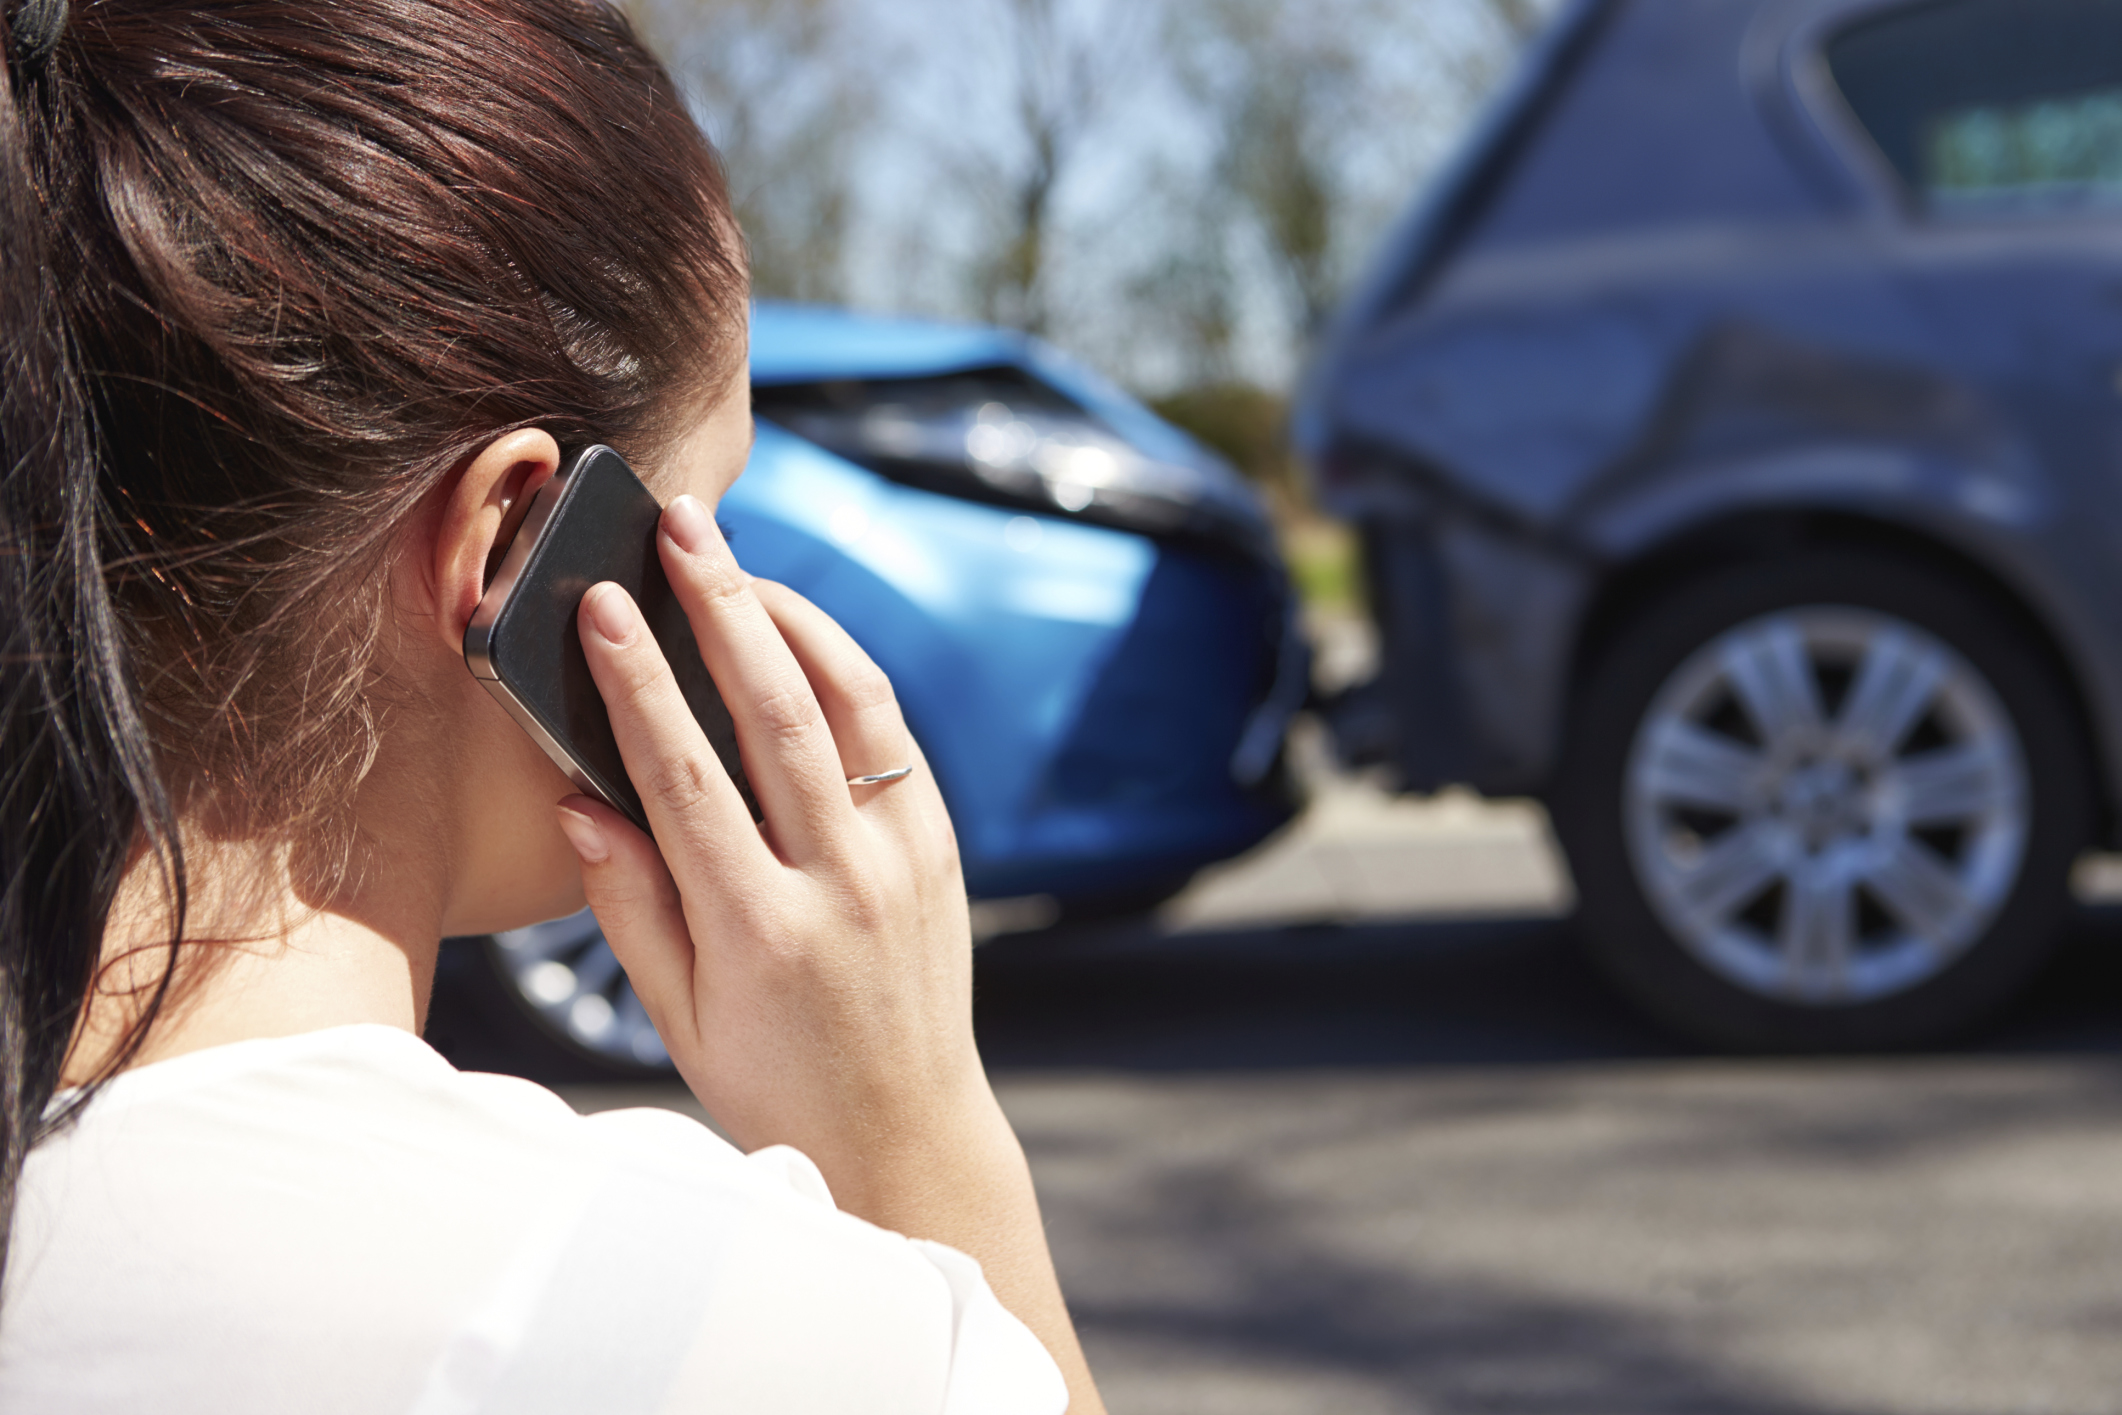 5 Common Mistakes That Cause Truck Accidents